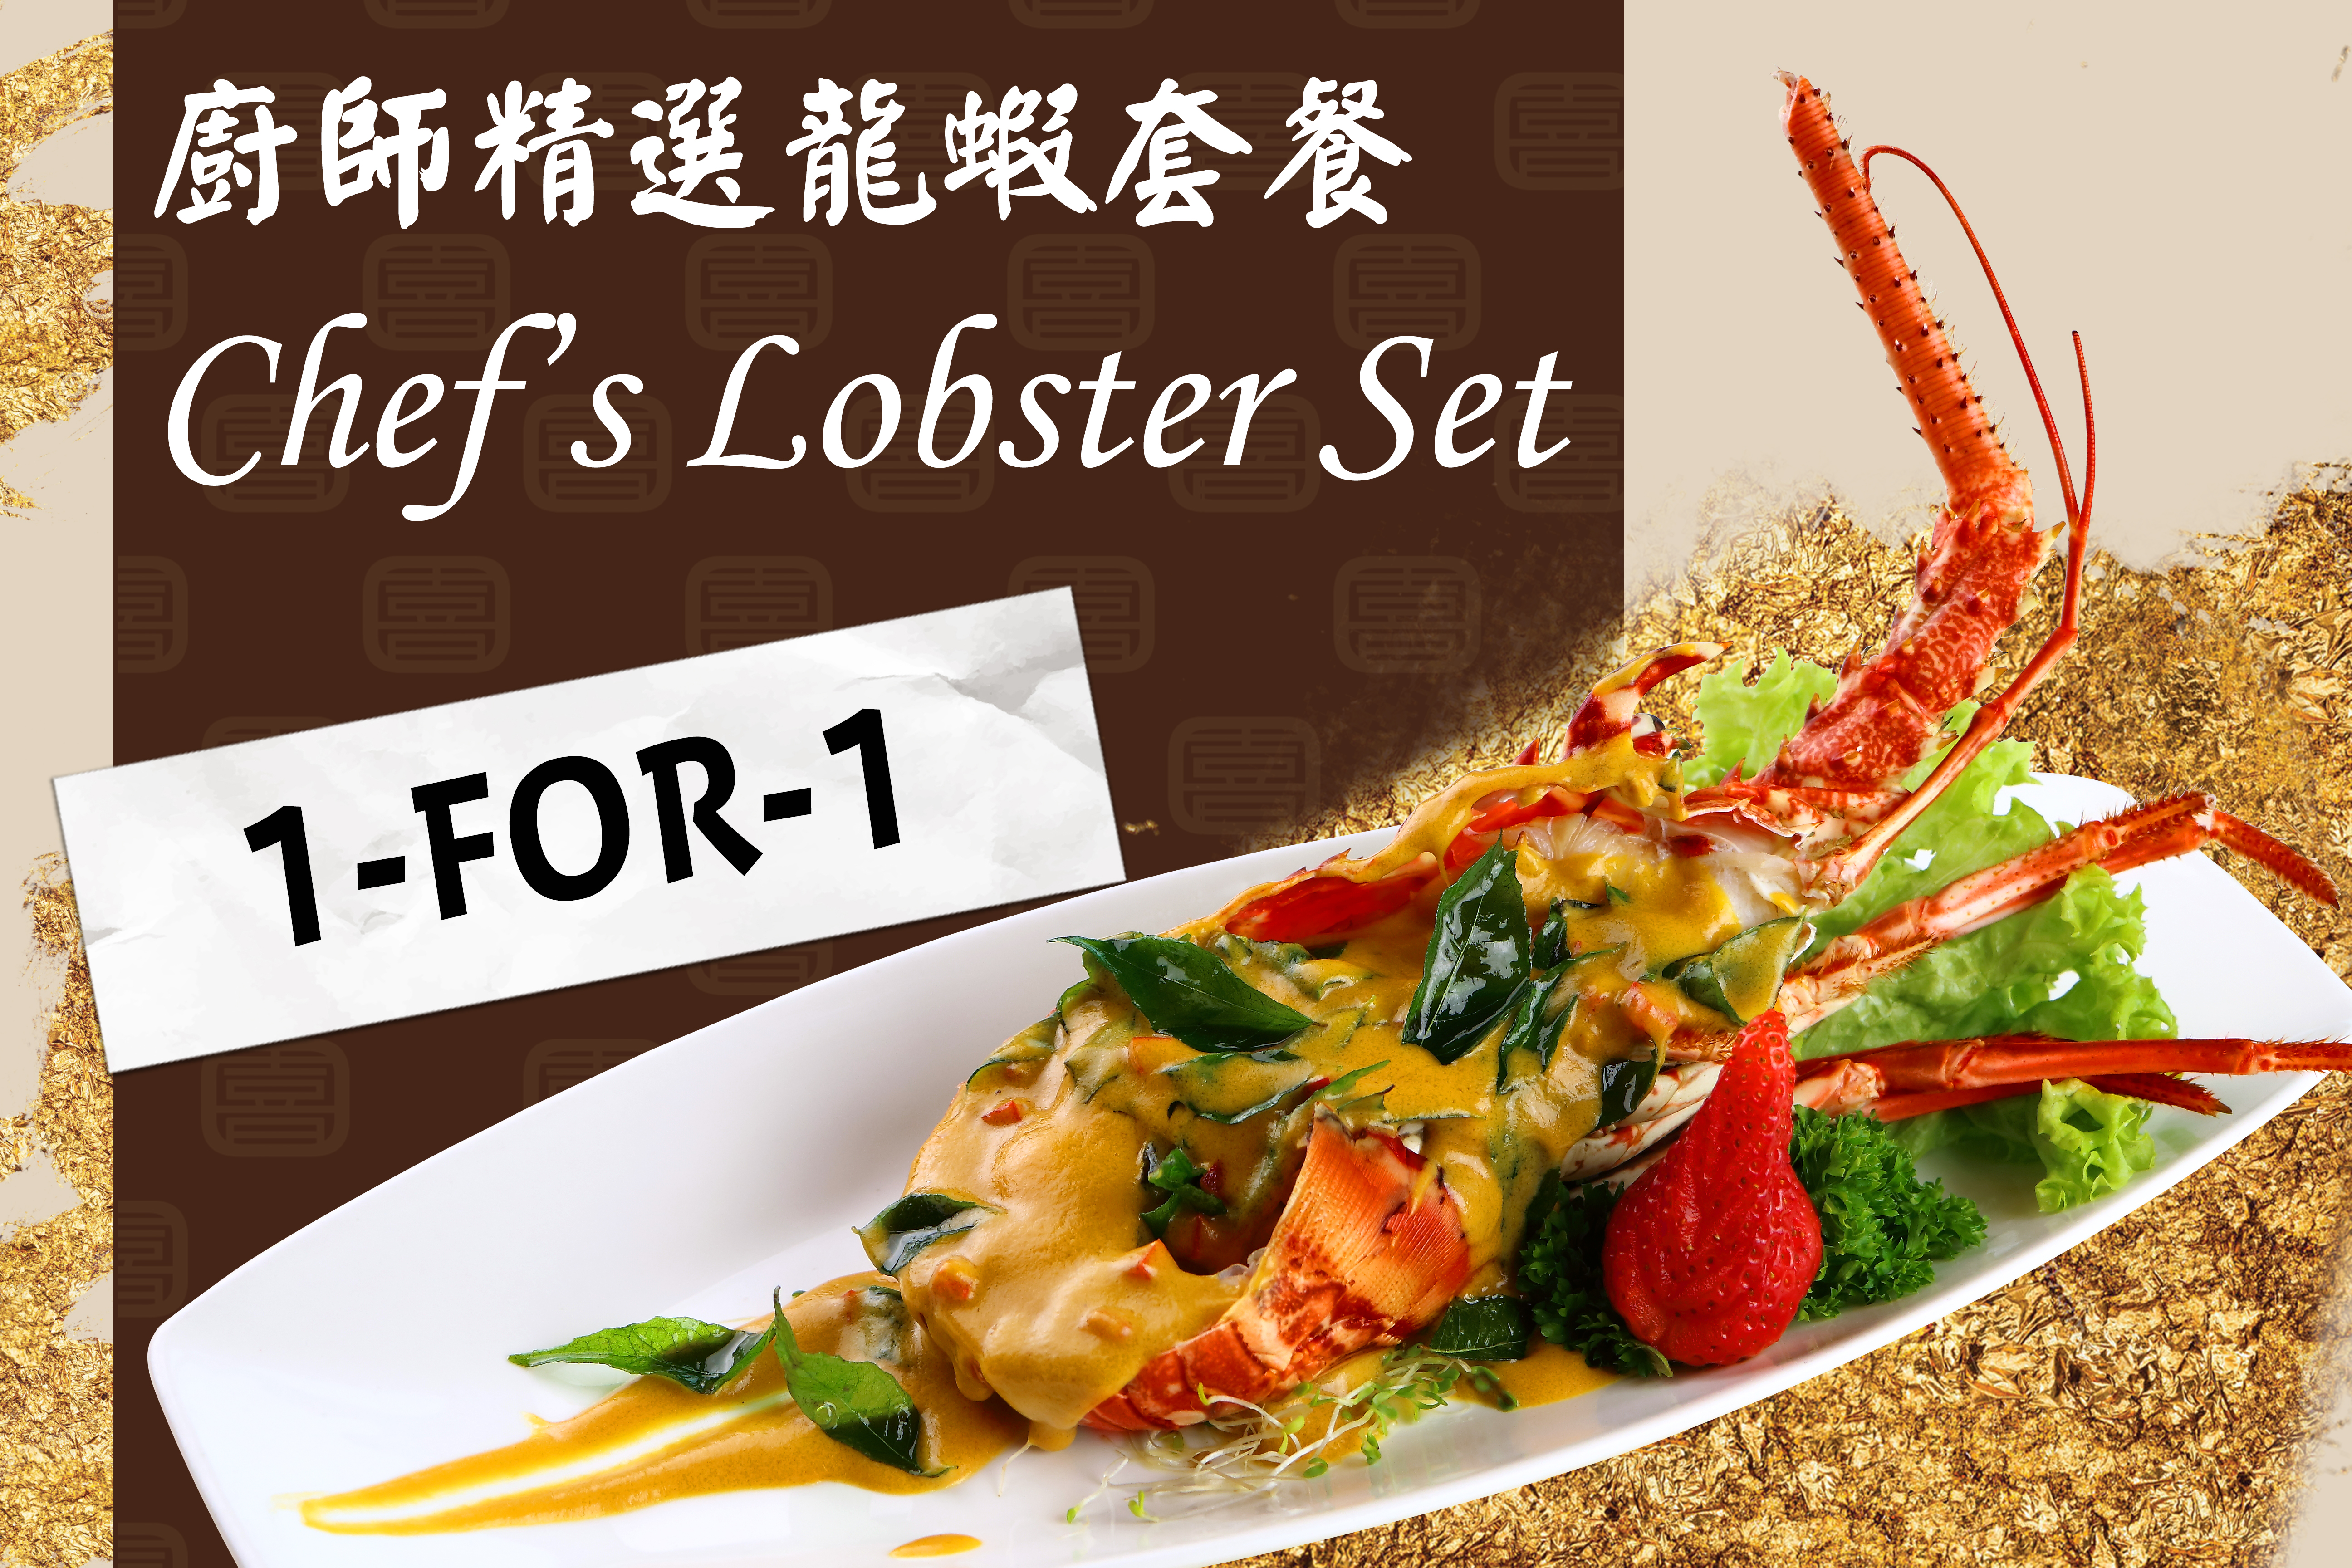 Lobster Set 1-For-1